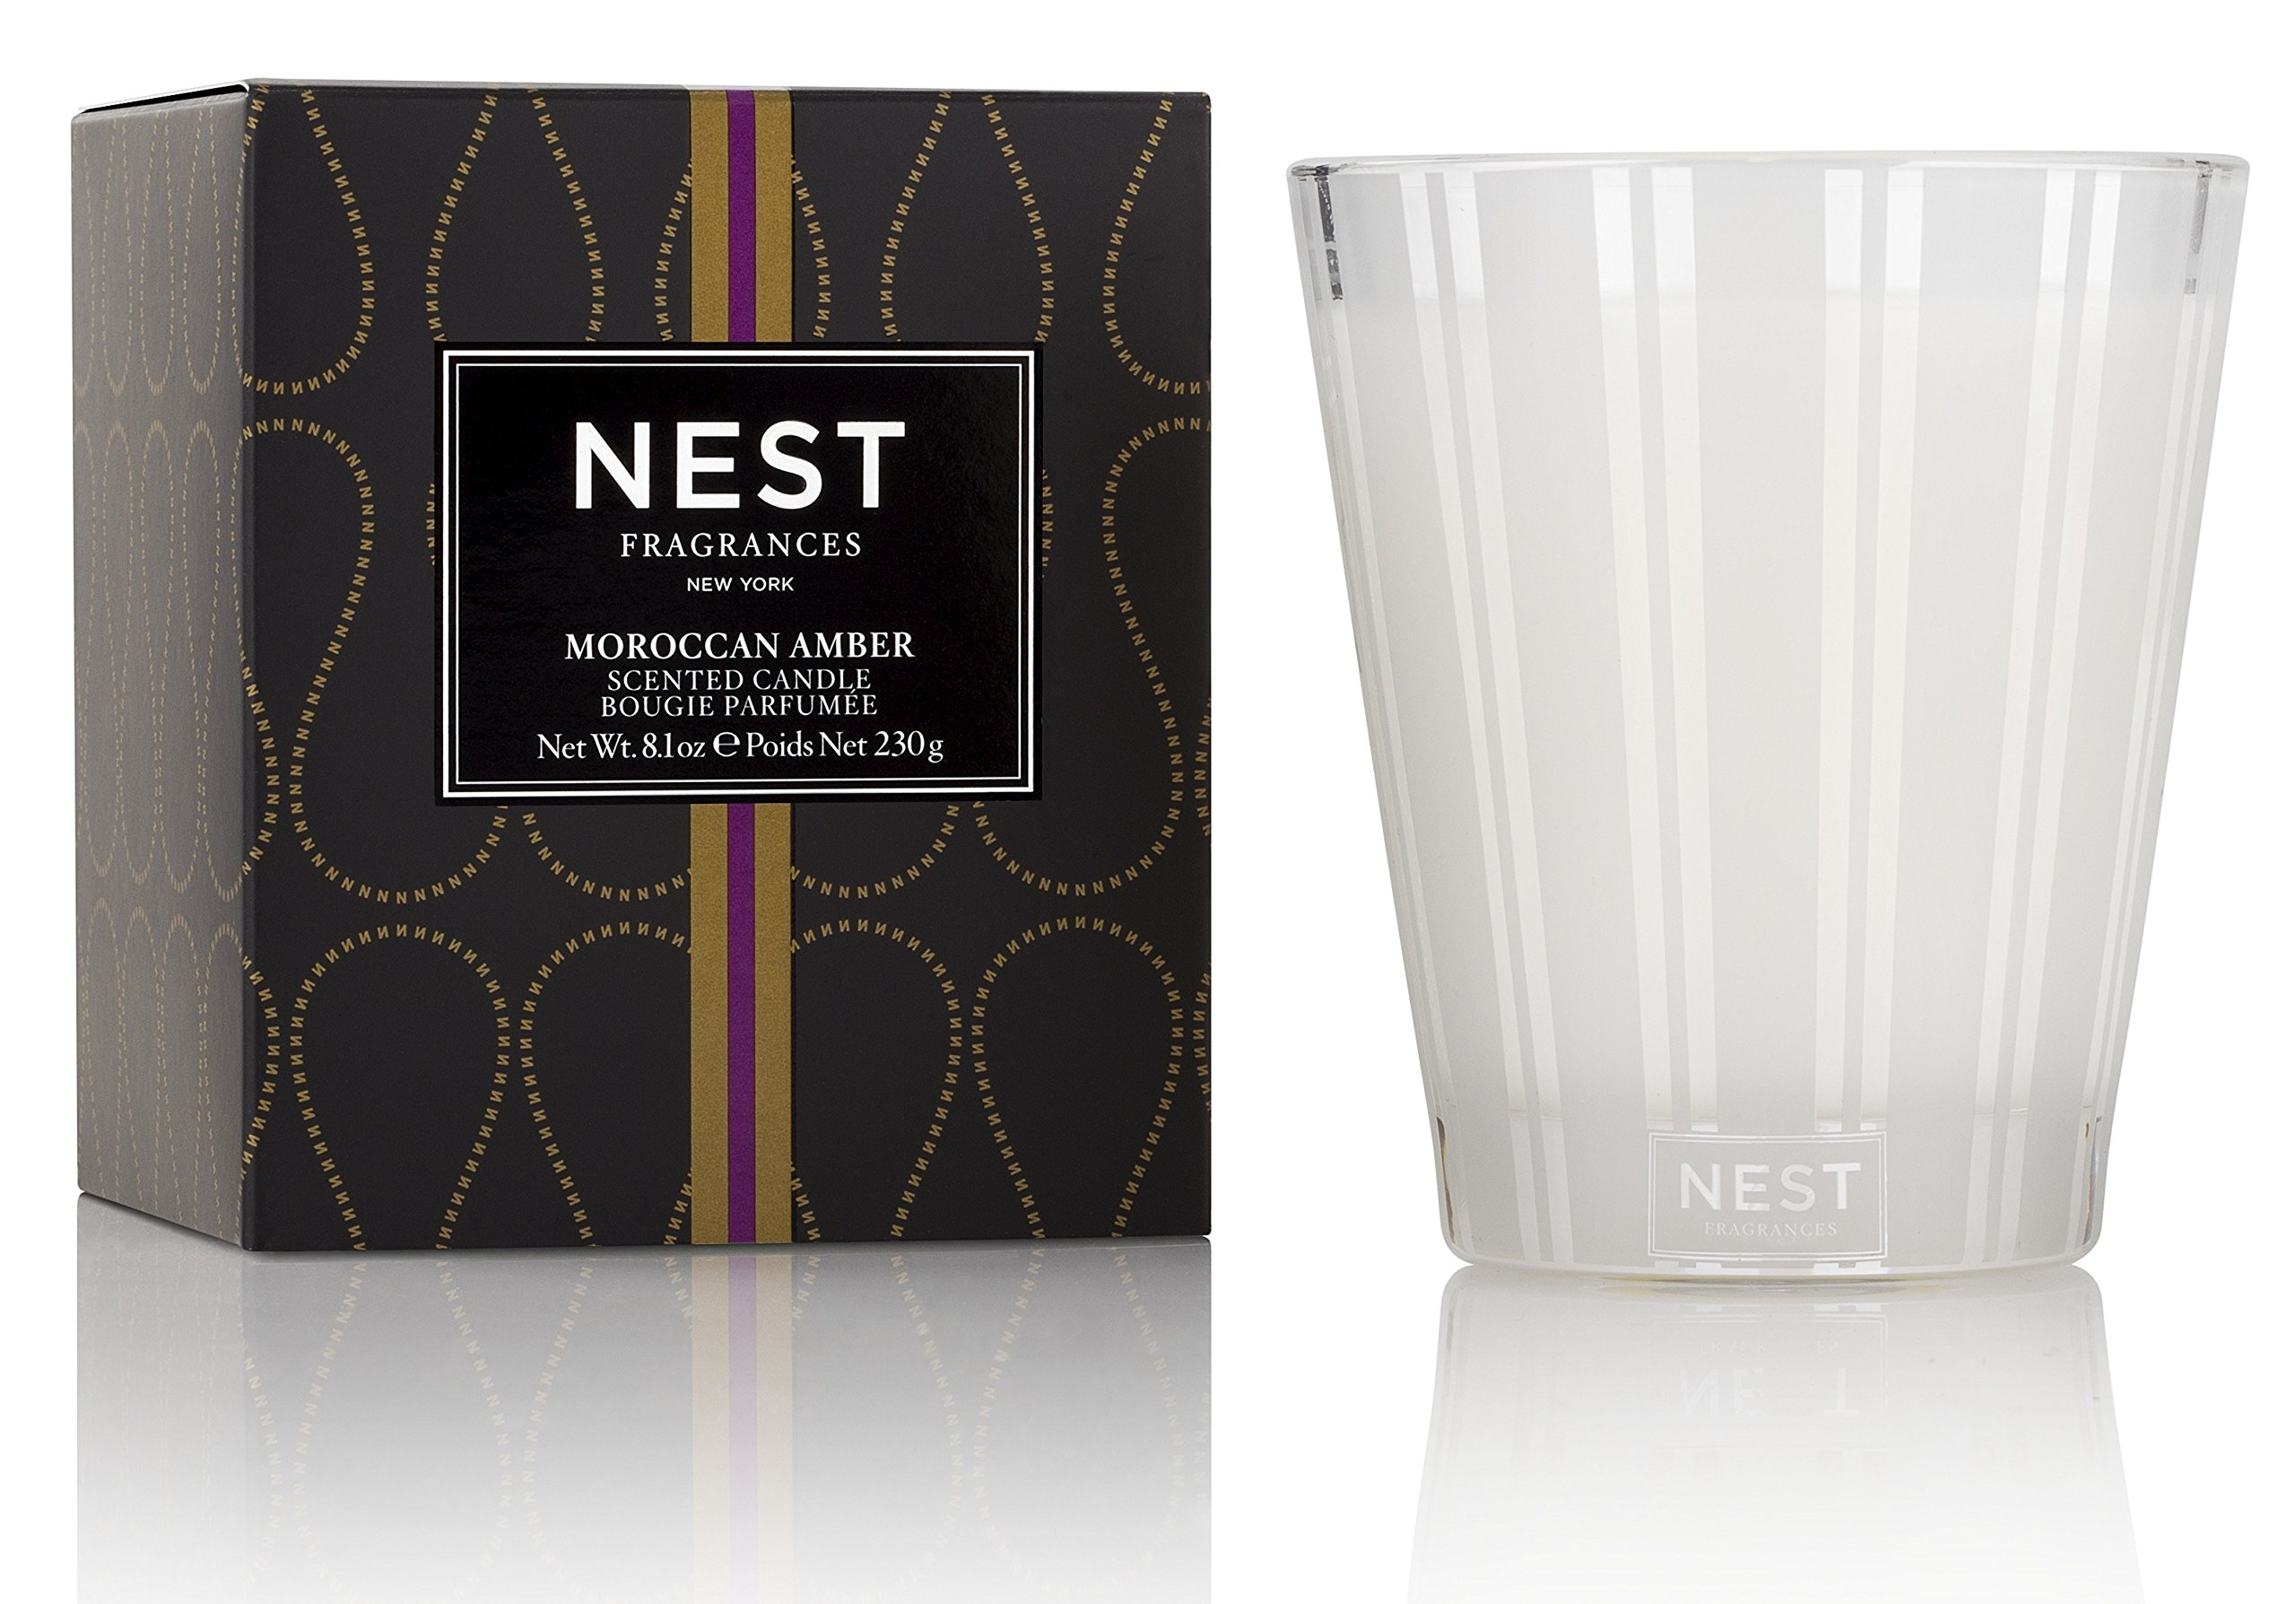 NEST Fragrances NEST01MA003 Classic Candle- Moroccan Amber, 8.1 oz by NEST Fragrances